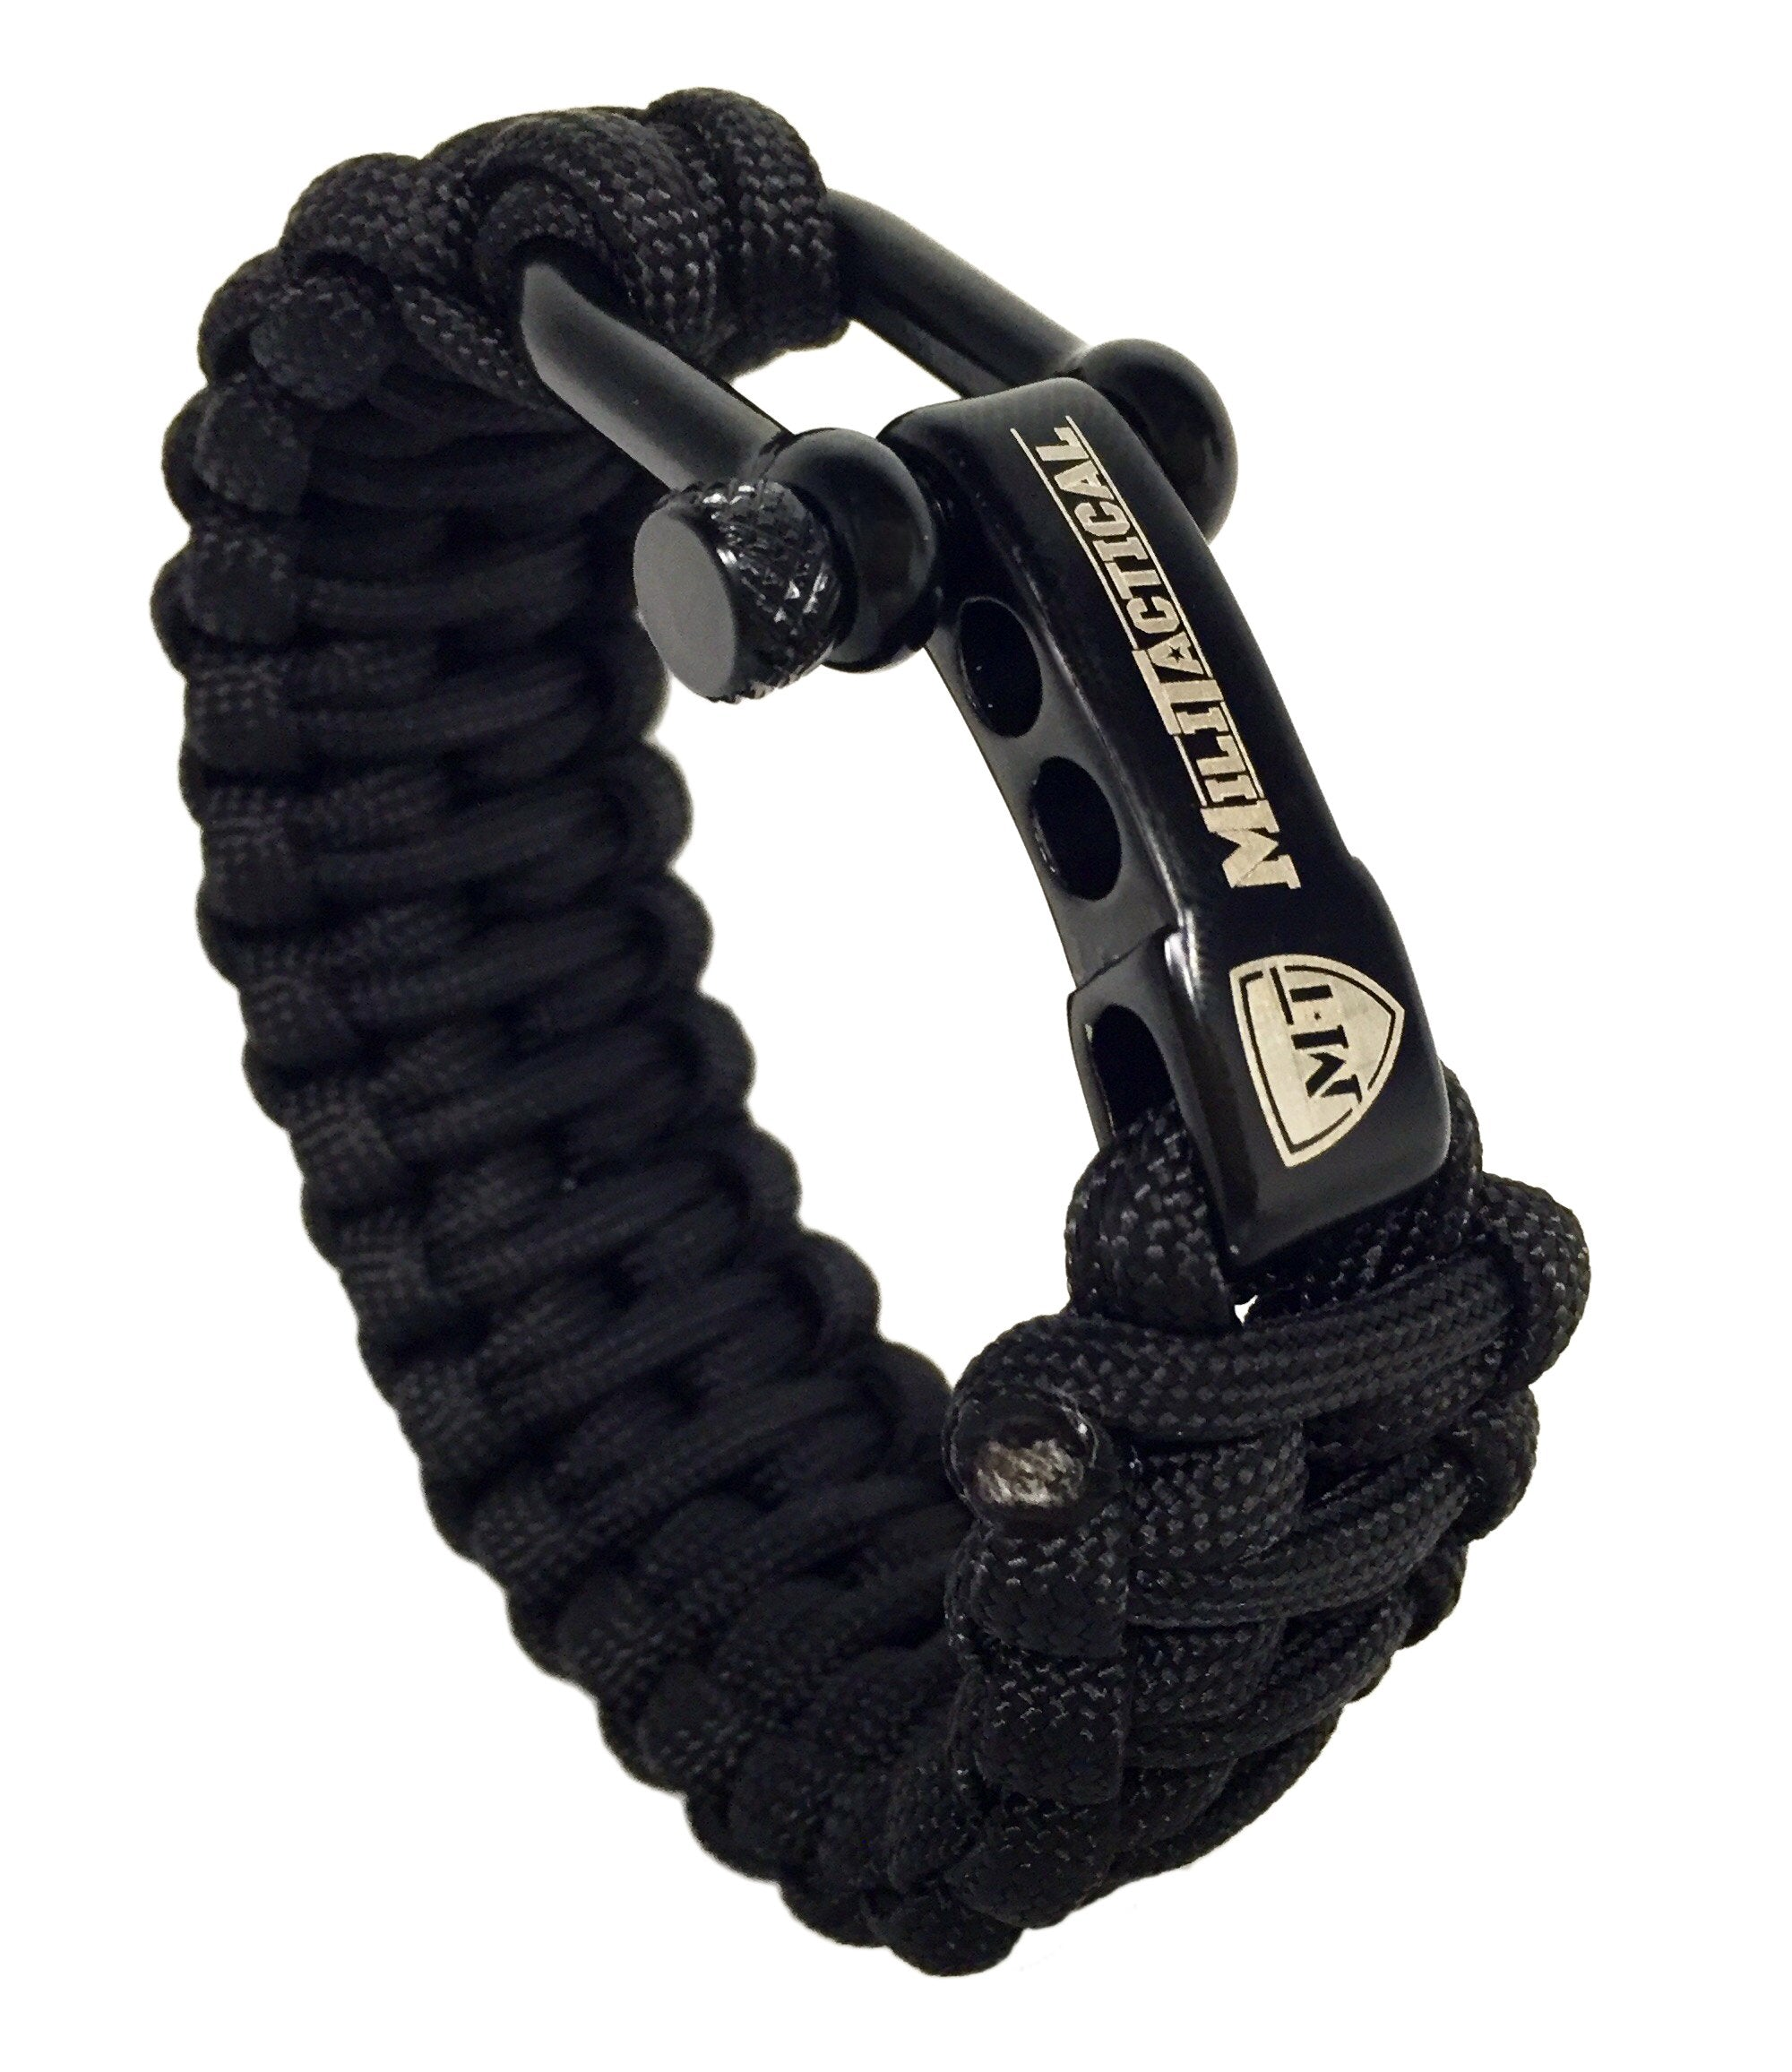 Black Tactical Paracord Bracelet Militactical